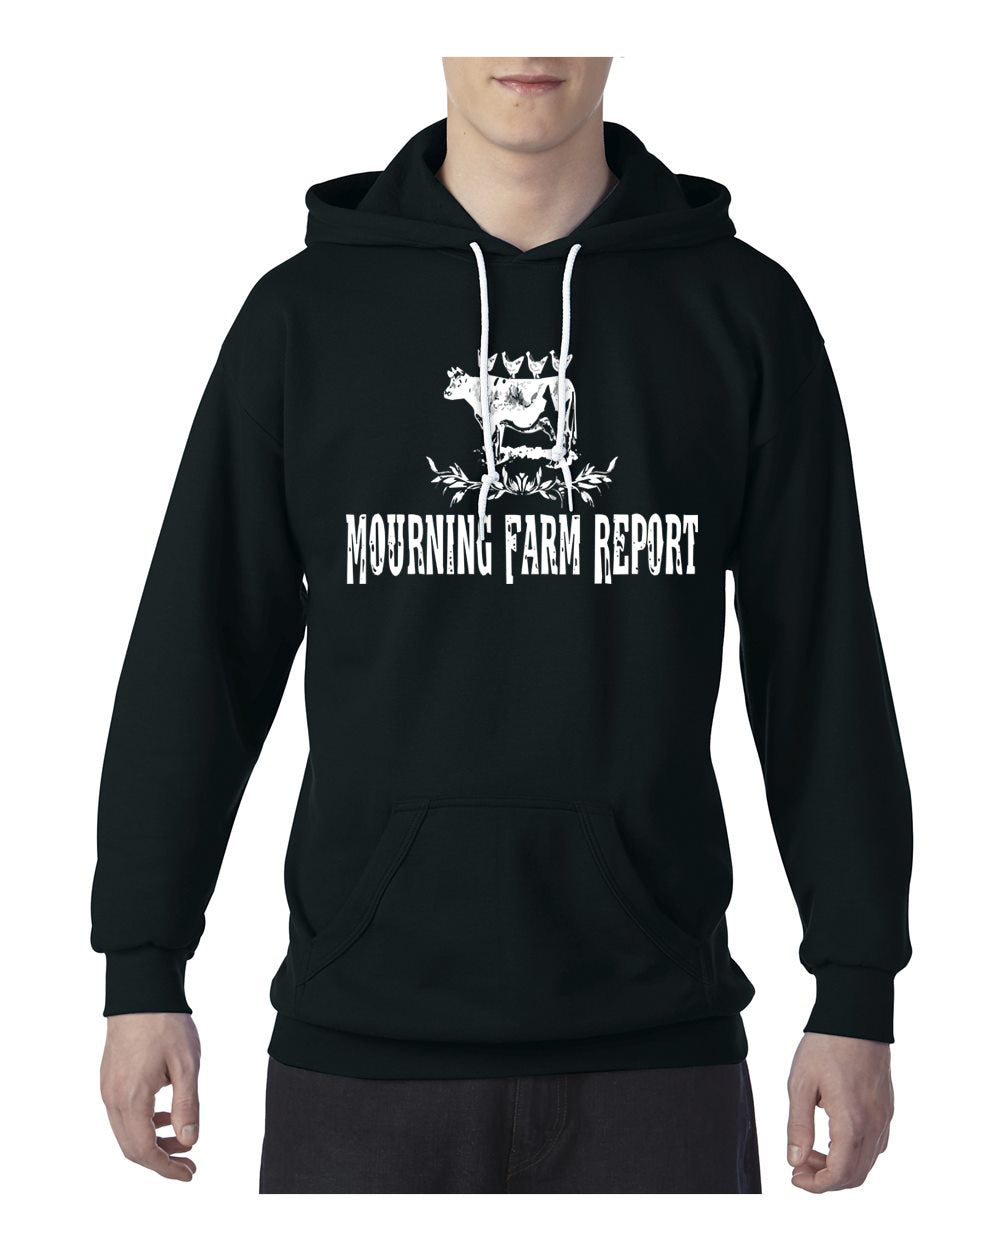 Mourning Farm Report Cow Pocket Hoodie